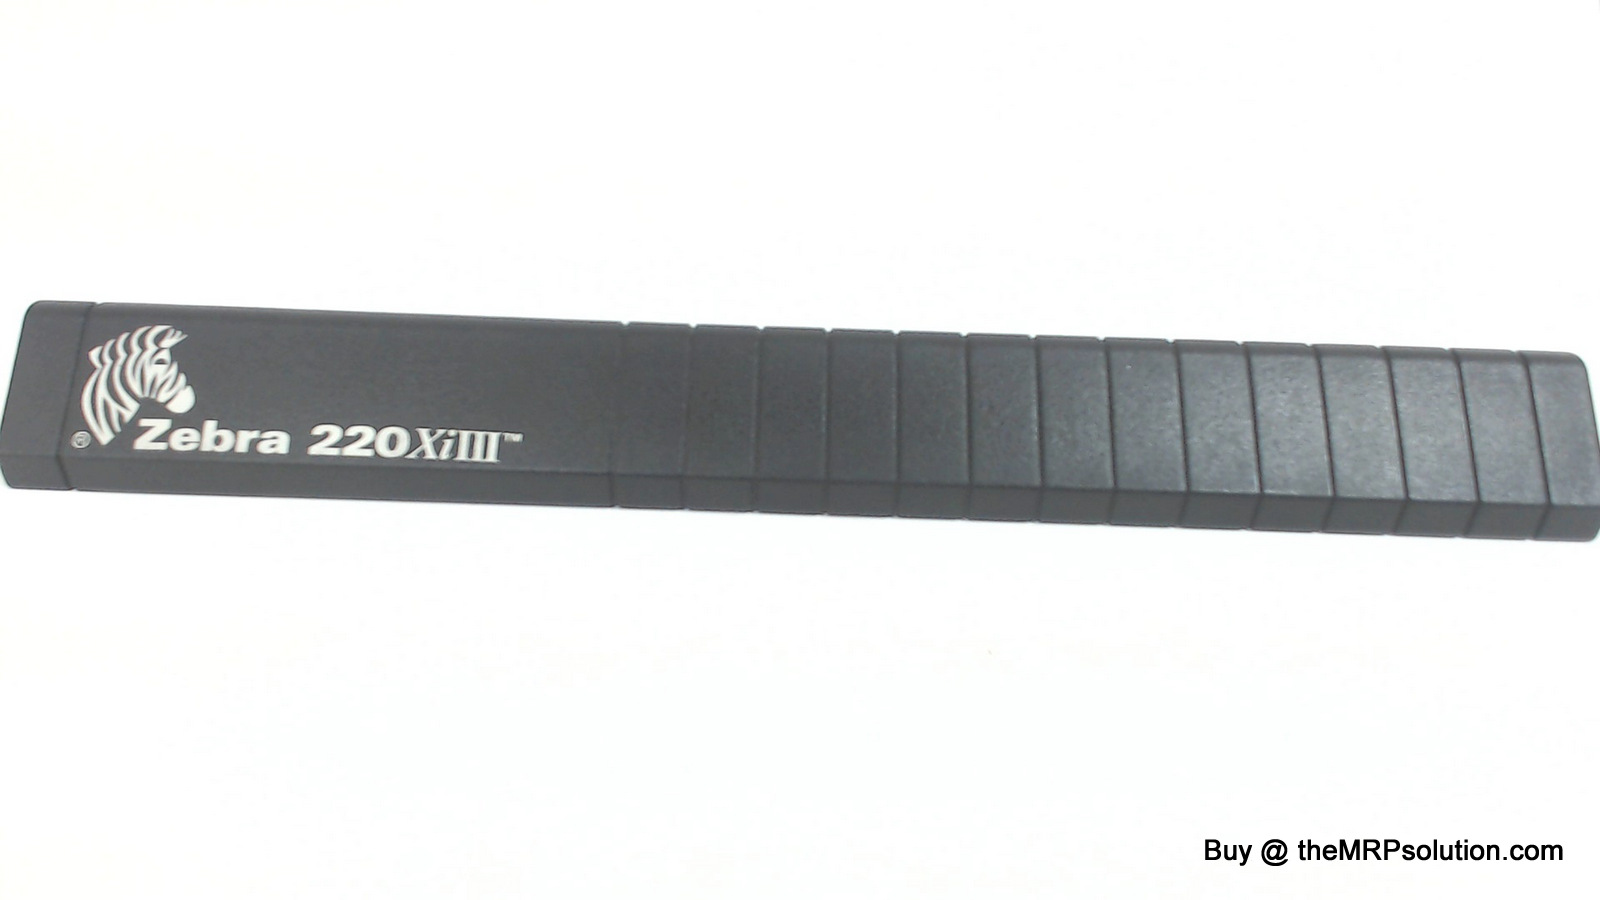 ZEBRA 22142 NAME PLATE, 220XI III New